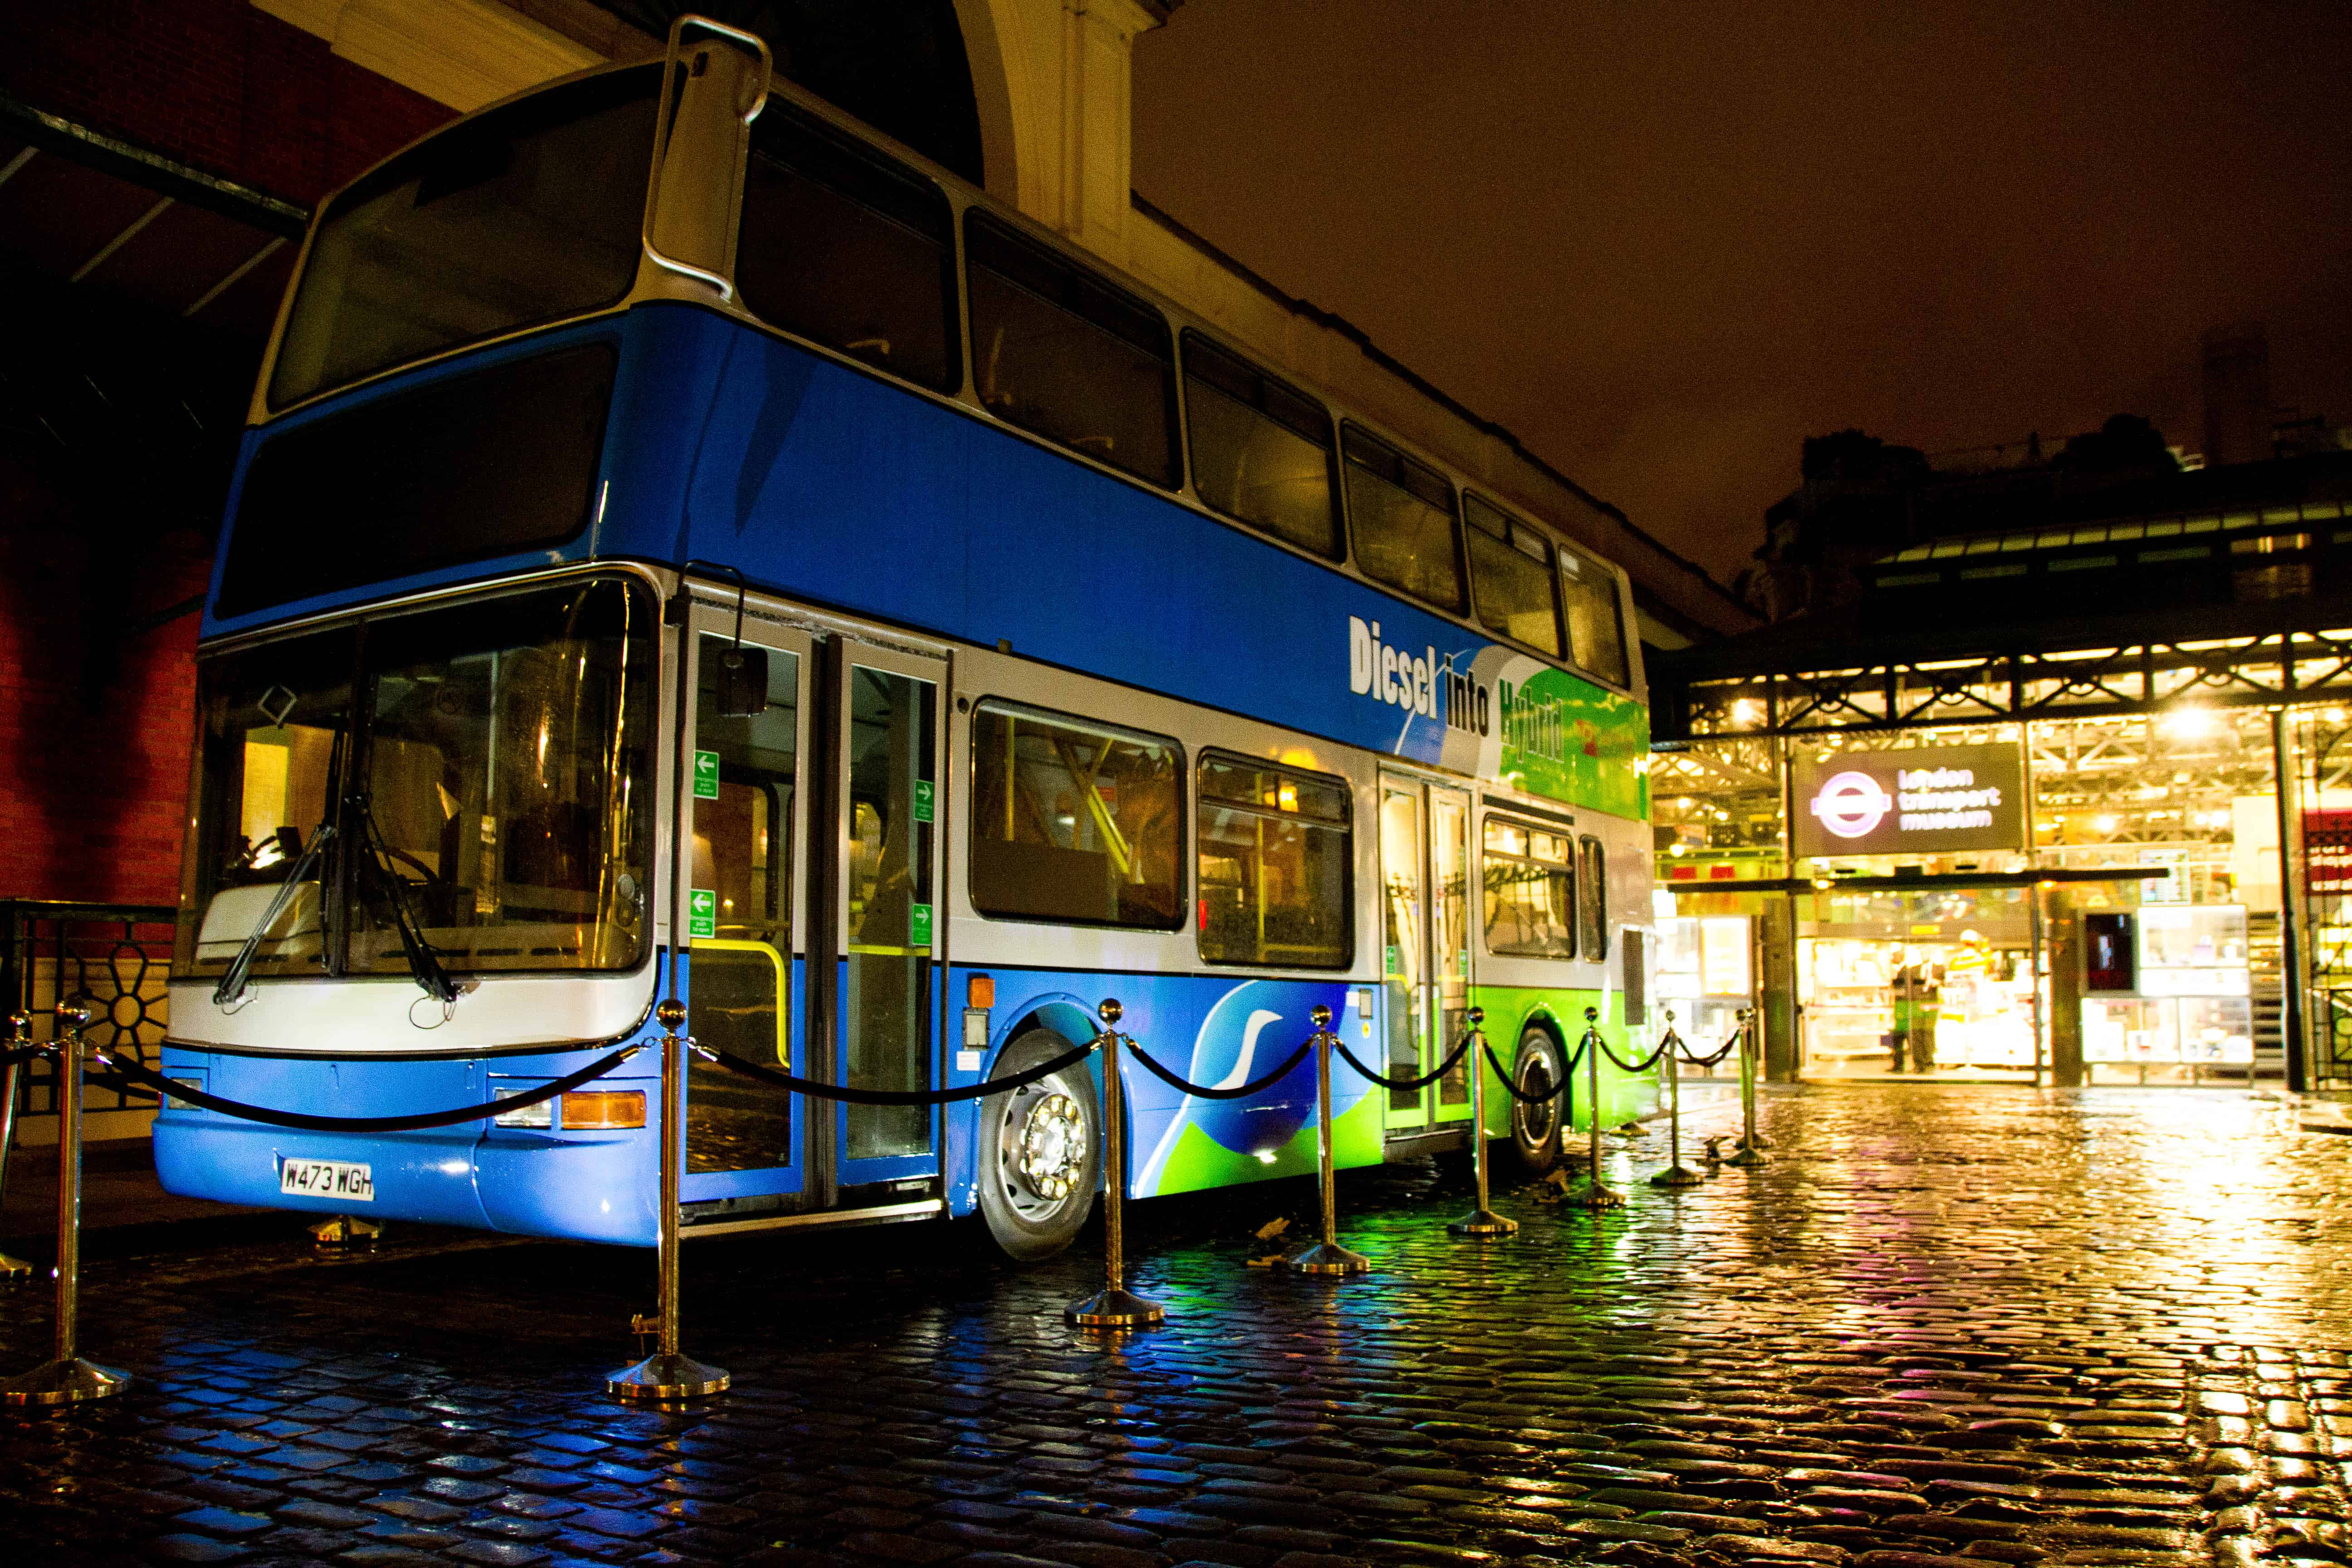 Vantagew is currently in talks with numerous bus operators in the UK